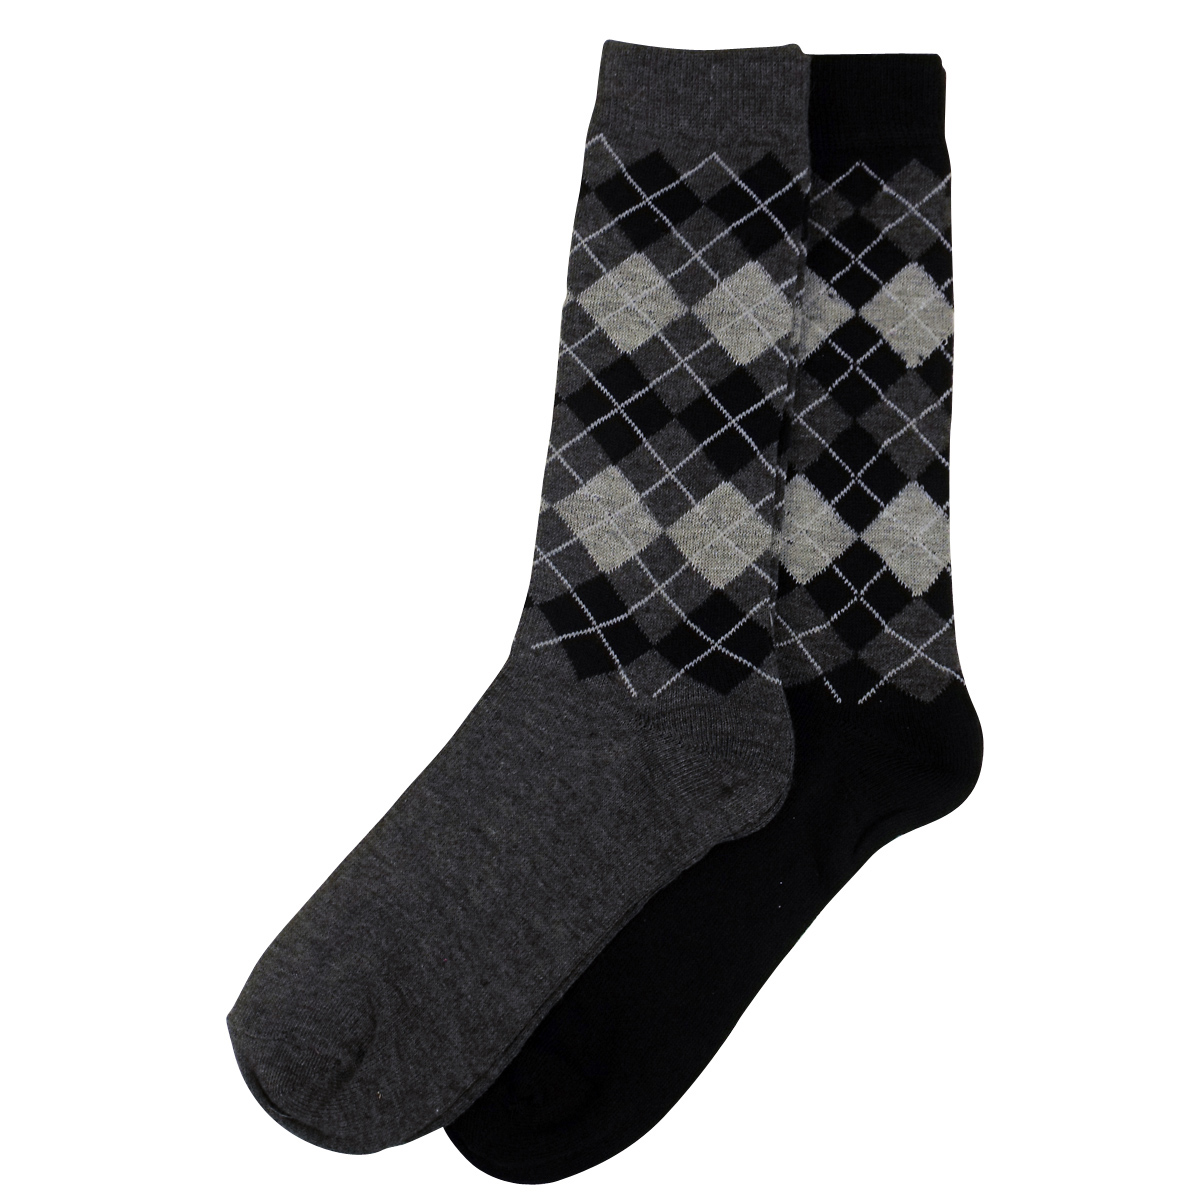 6 X Pairs Mens Argyle Suit Dress Socks Small Big Check